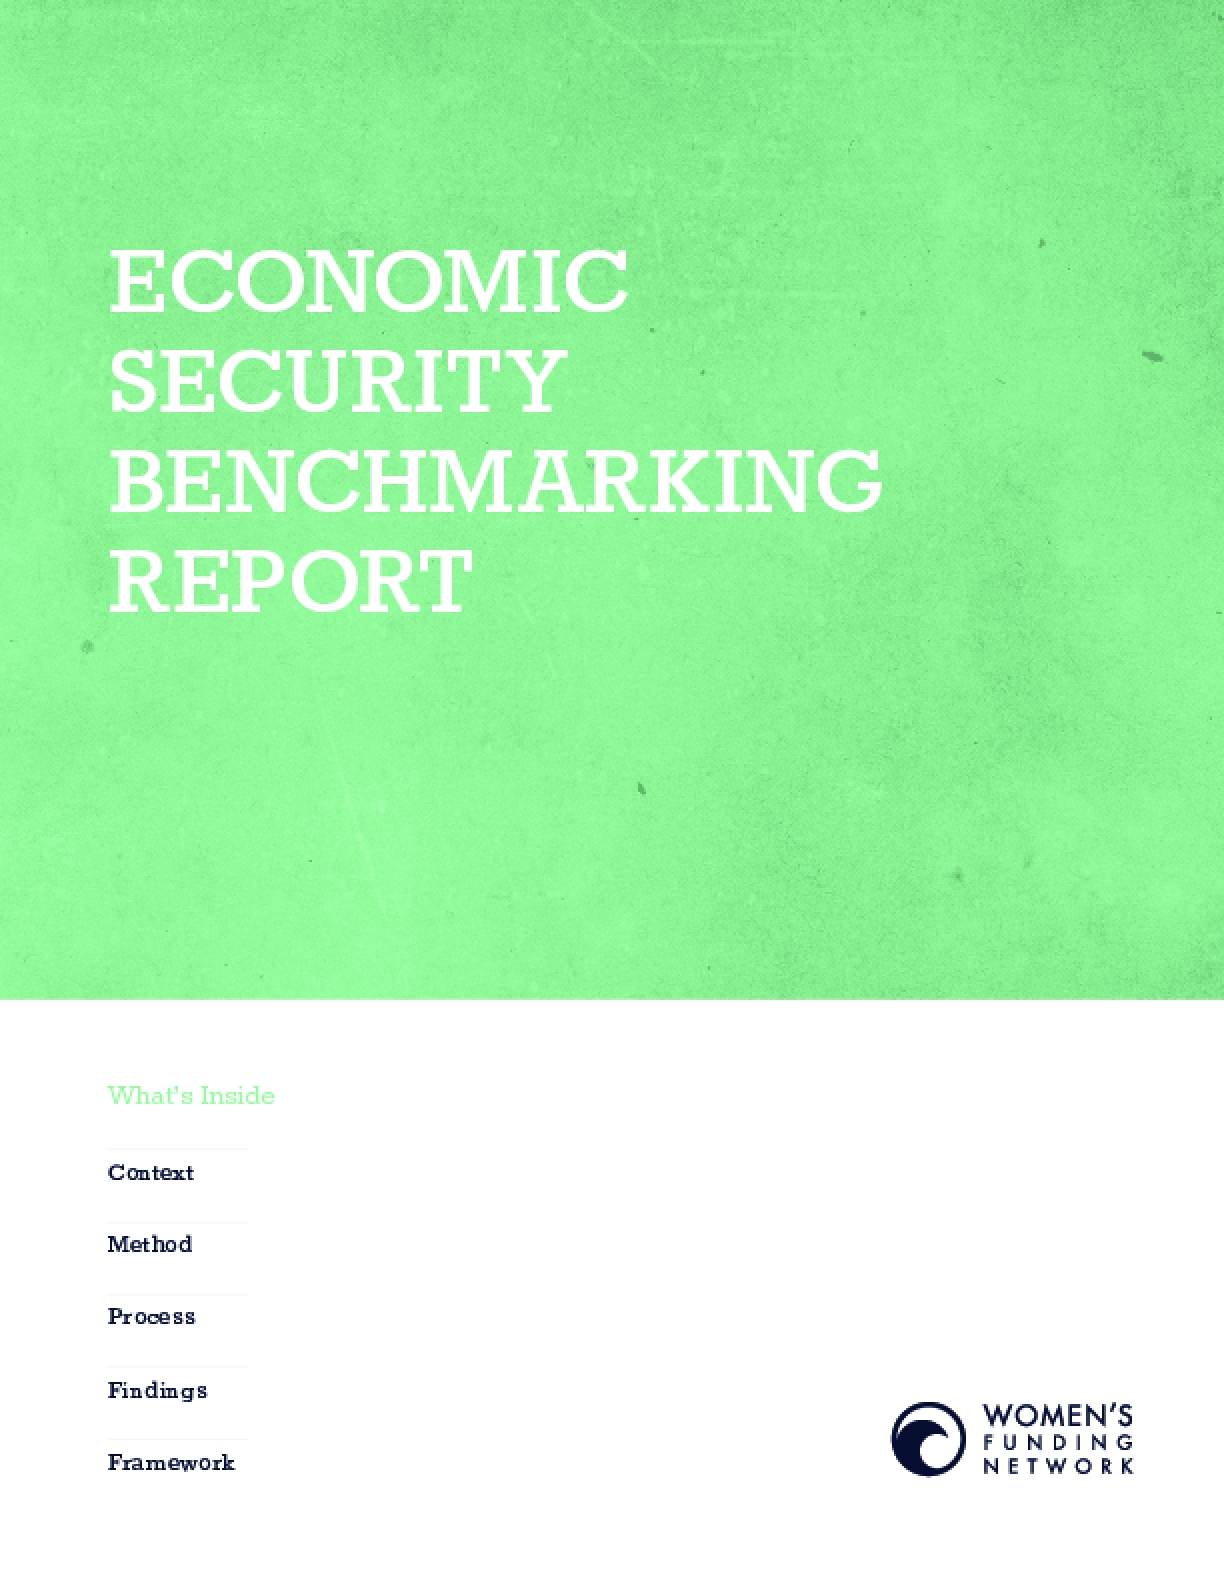 Economic Security Benchmarking Report